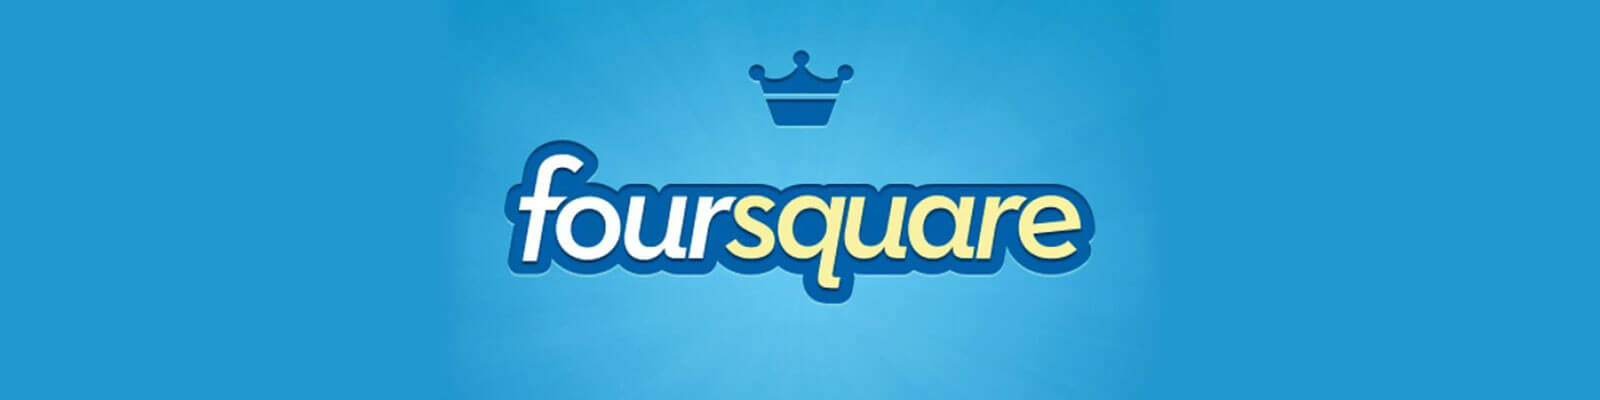 foursquare app development cost